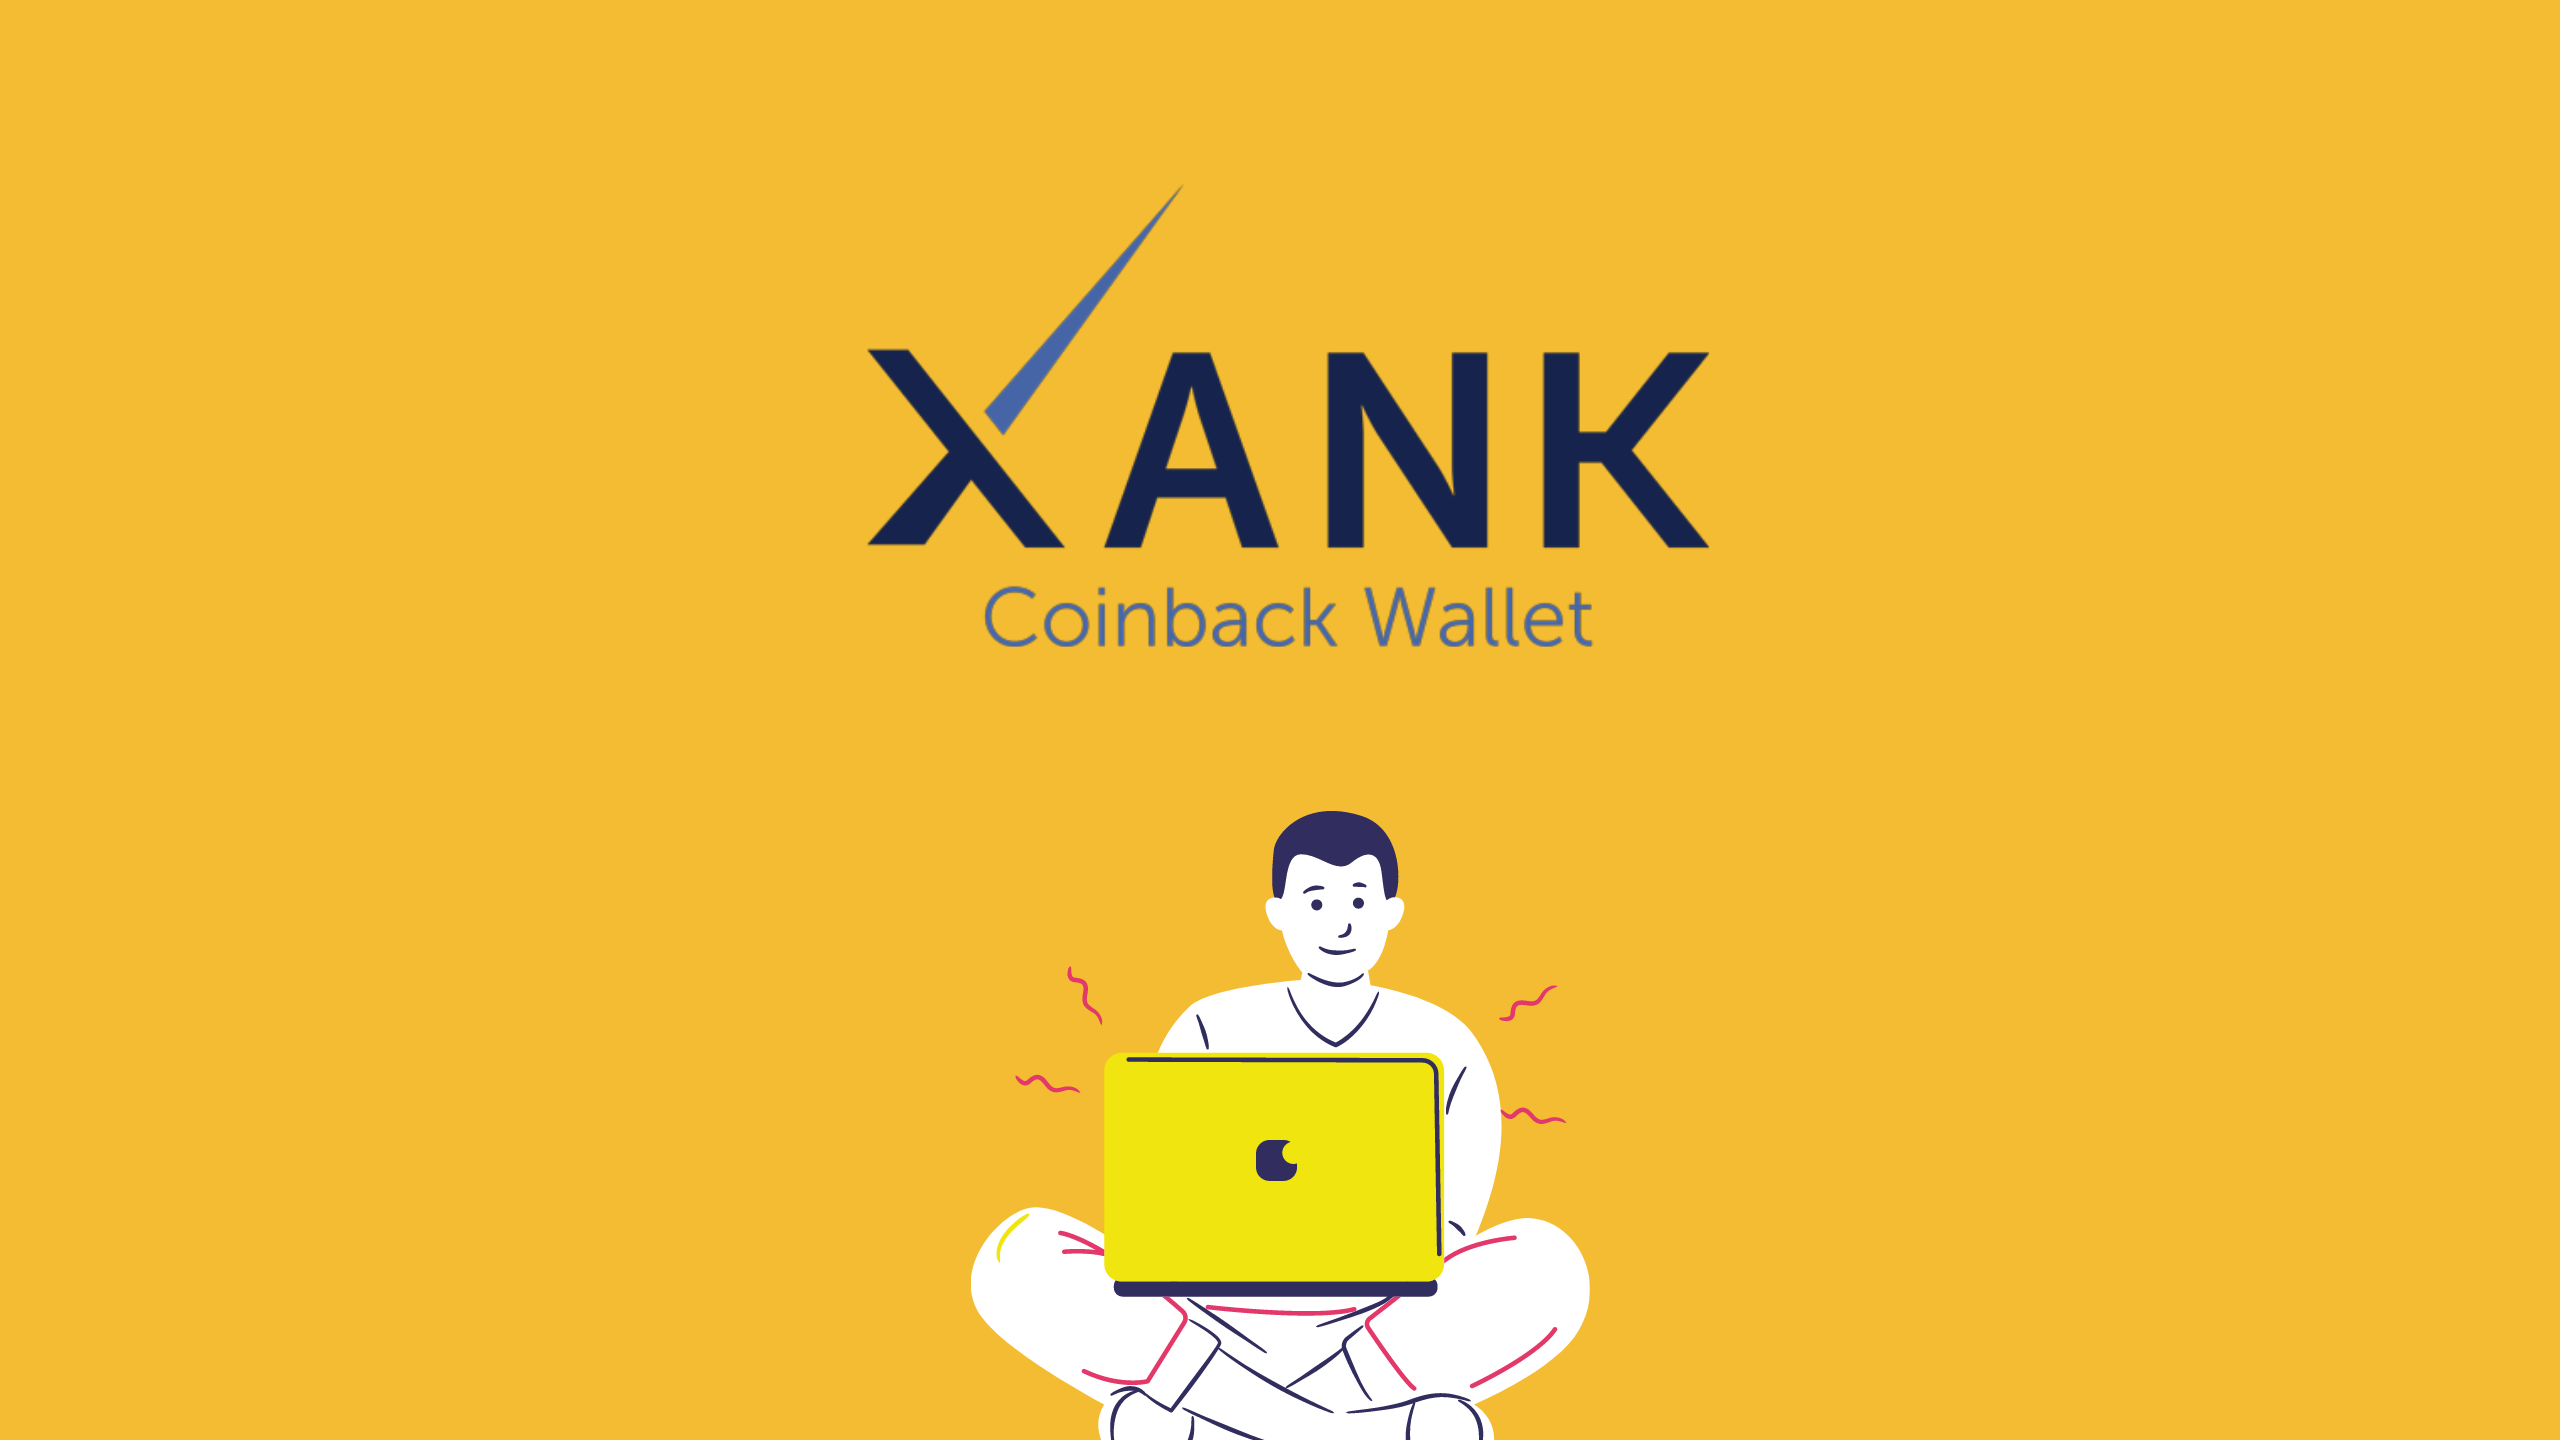 Getting Started with Xank Wallet